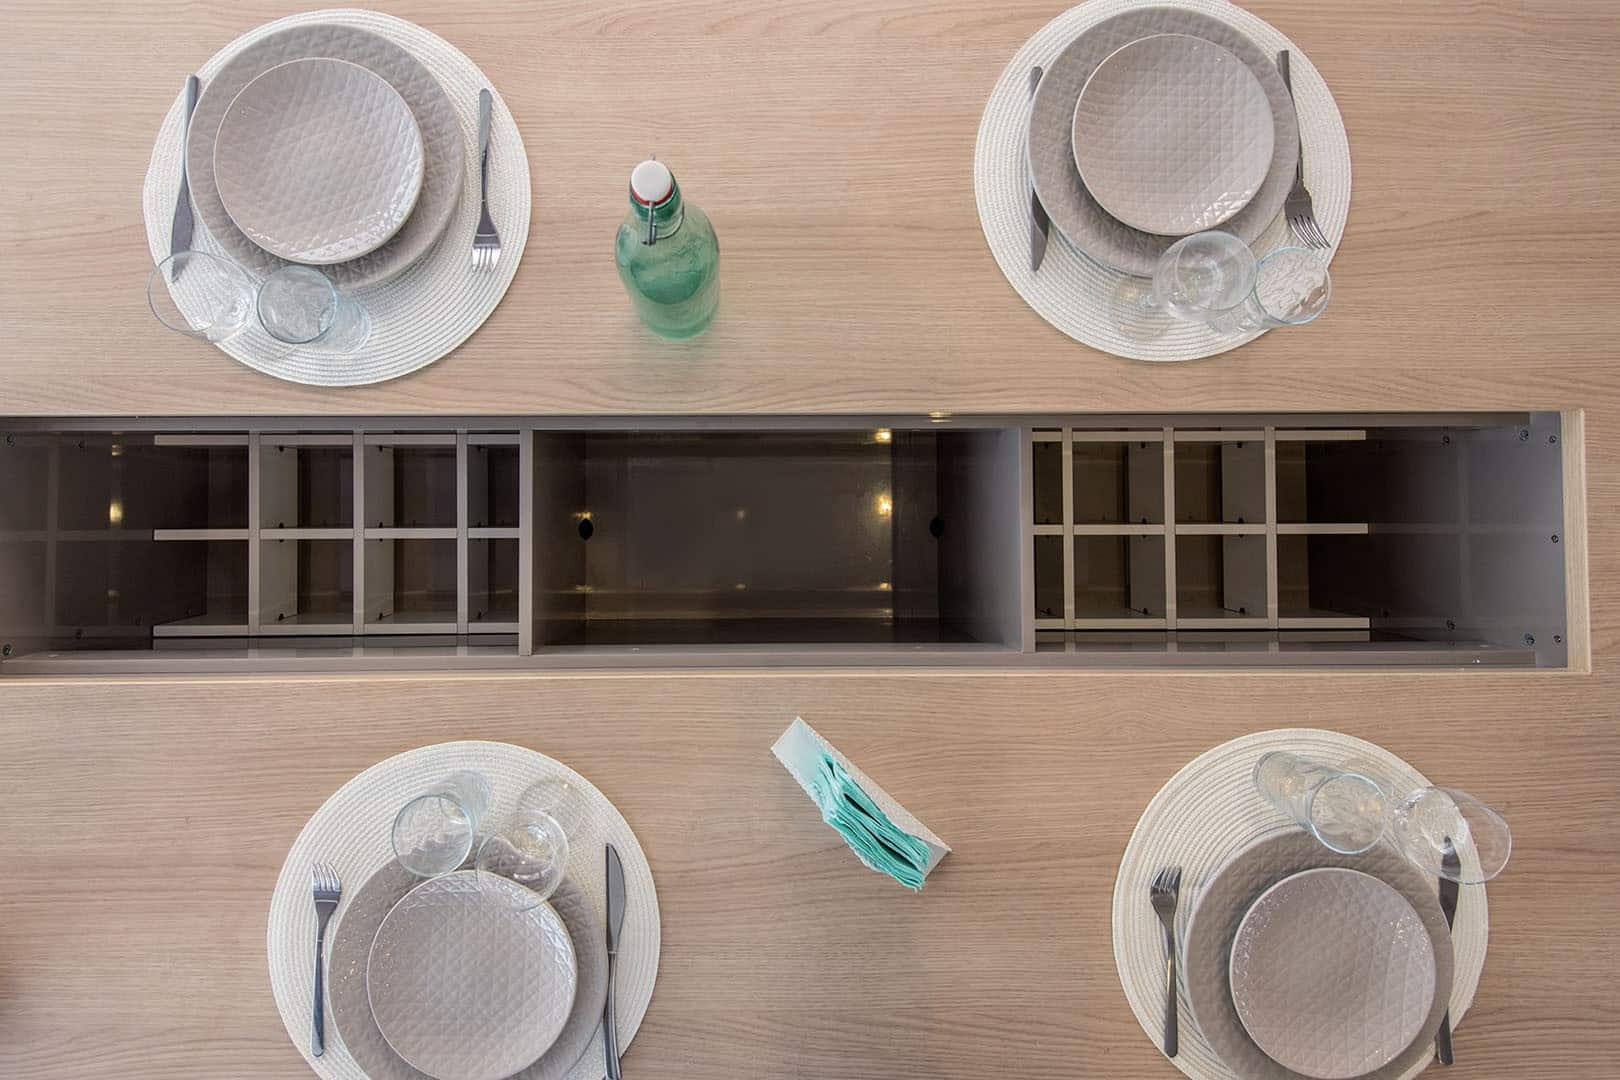 Set dinner table with storage possibilities in the center of the table for bottles and more